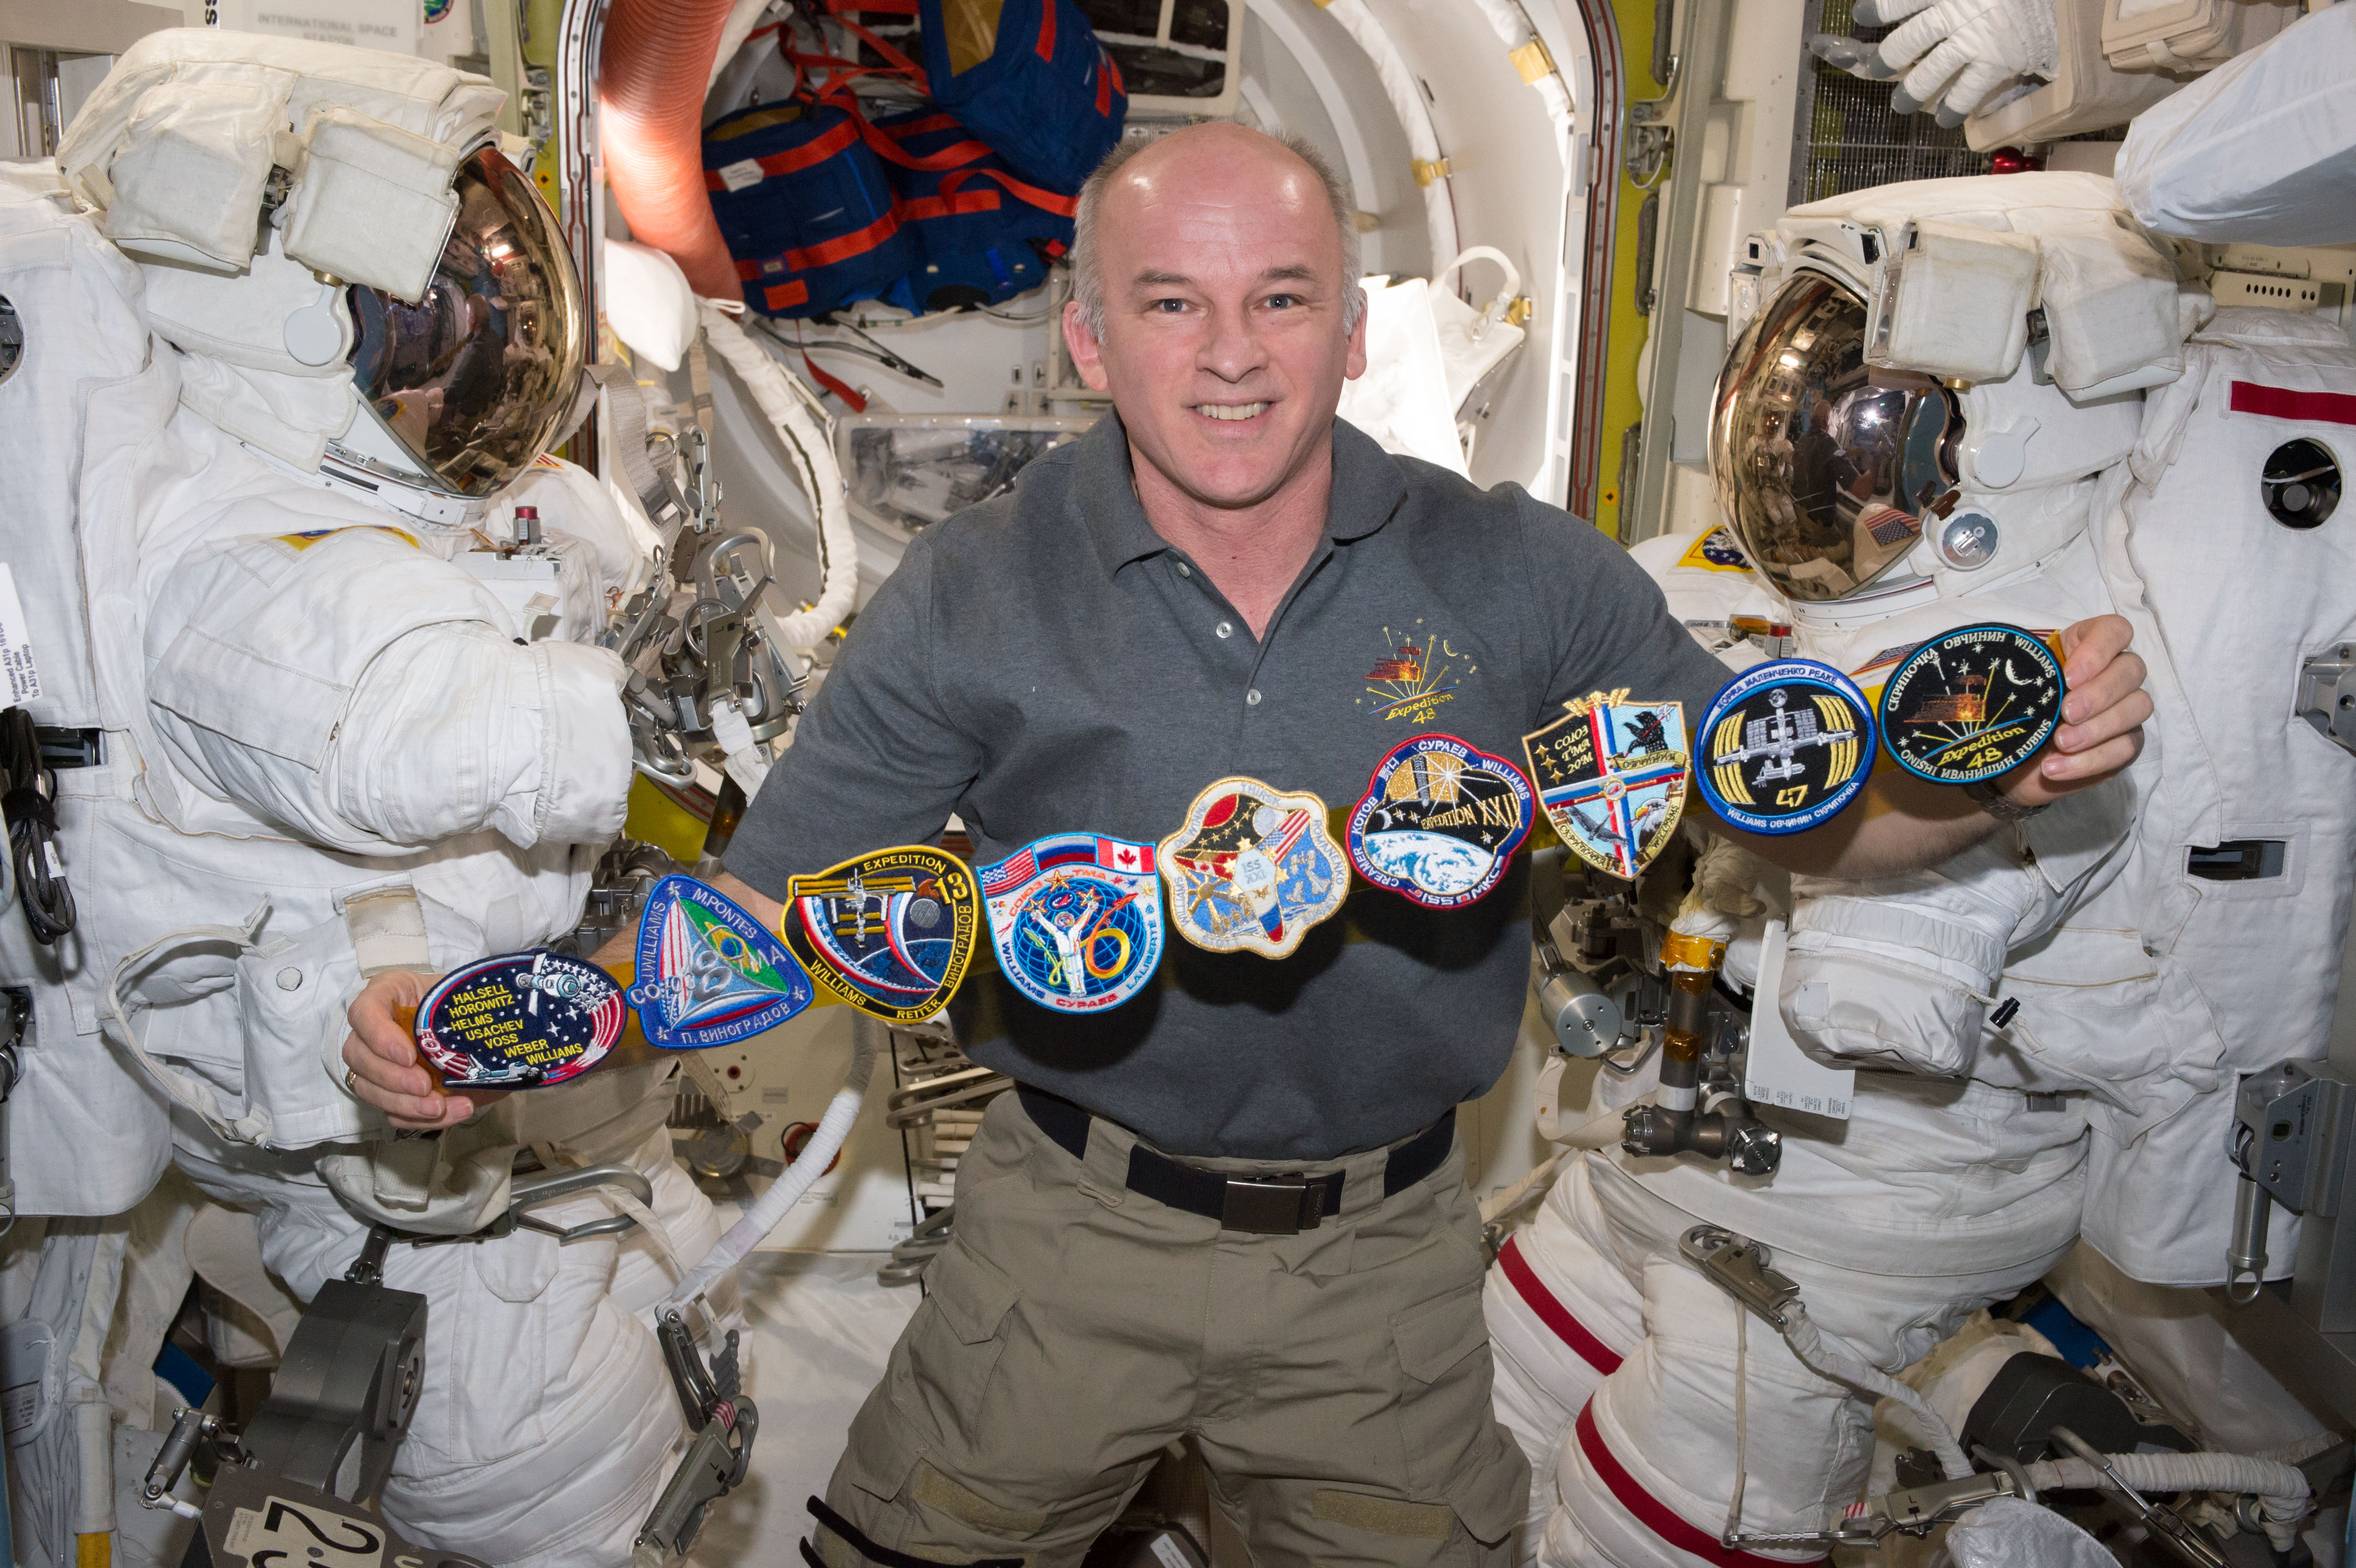 NASA's Jeff Williams, KD5TVQ, will hold the time in space record when he returns